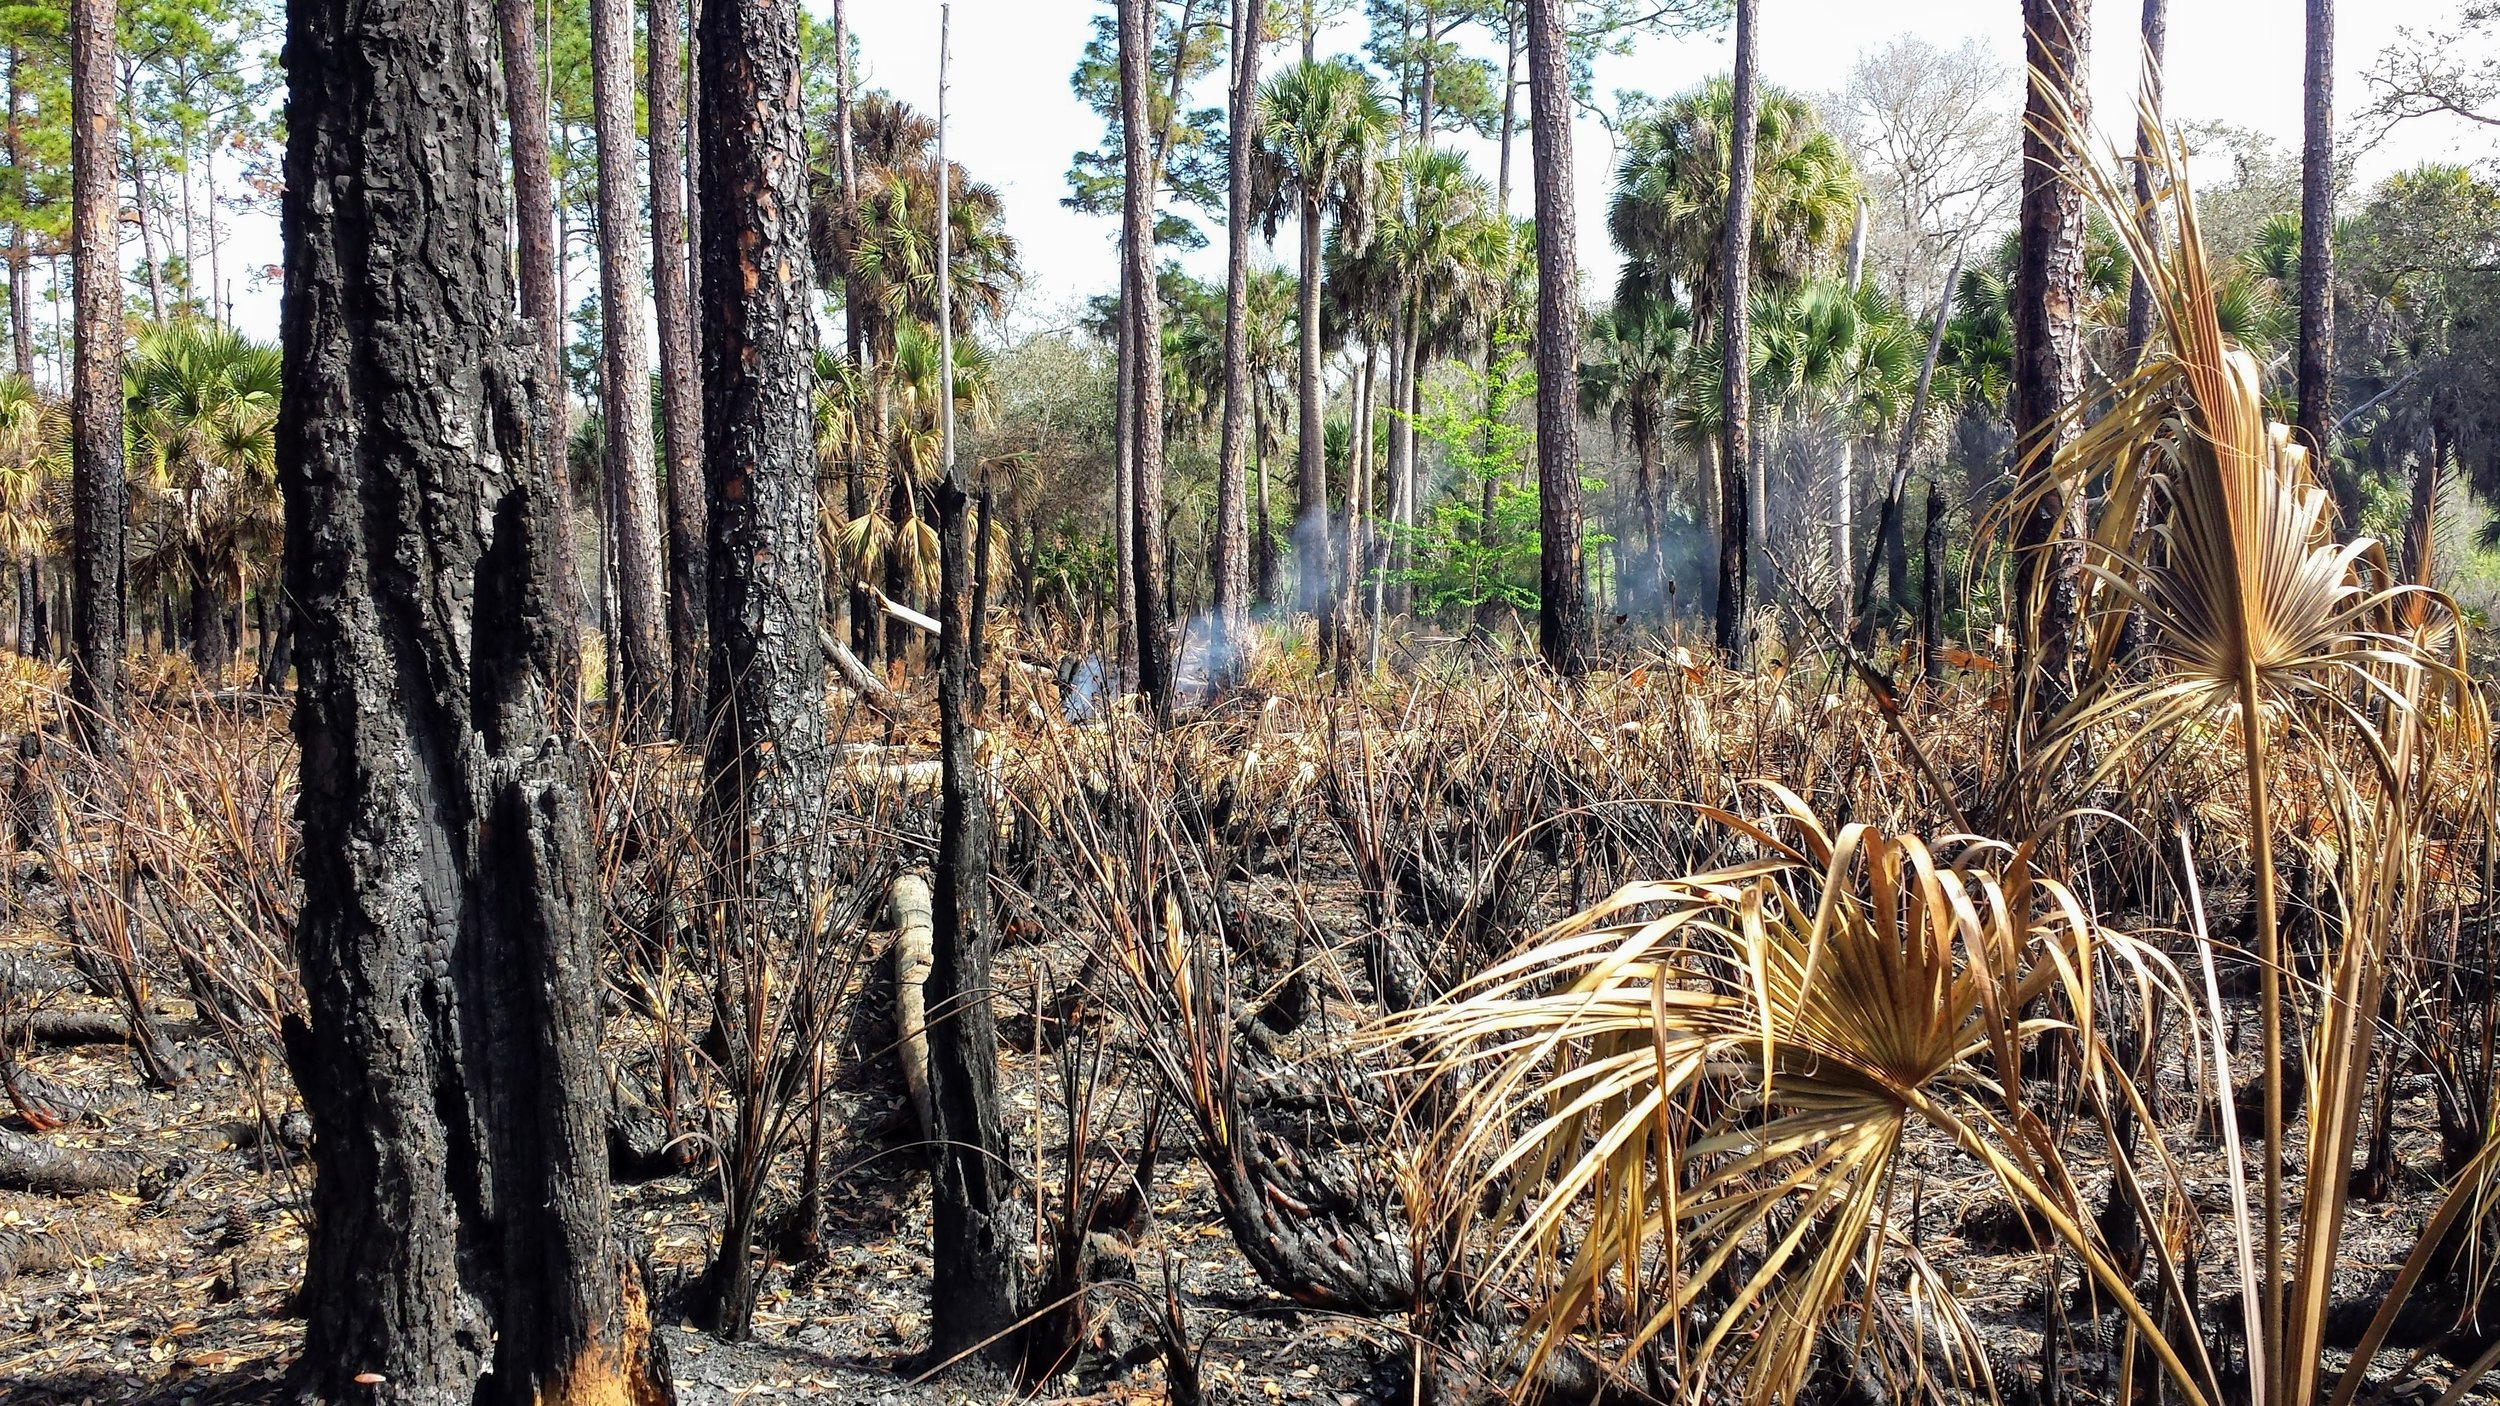 I stumbled upon this controlled burn in March 2014 during my 550-mile section hike of the Florida National Scenic Trail.